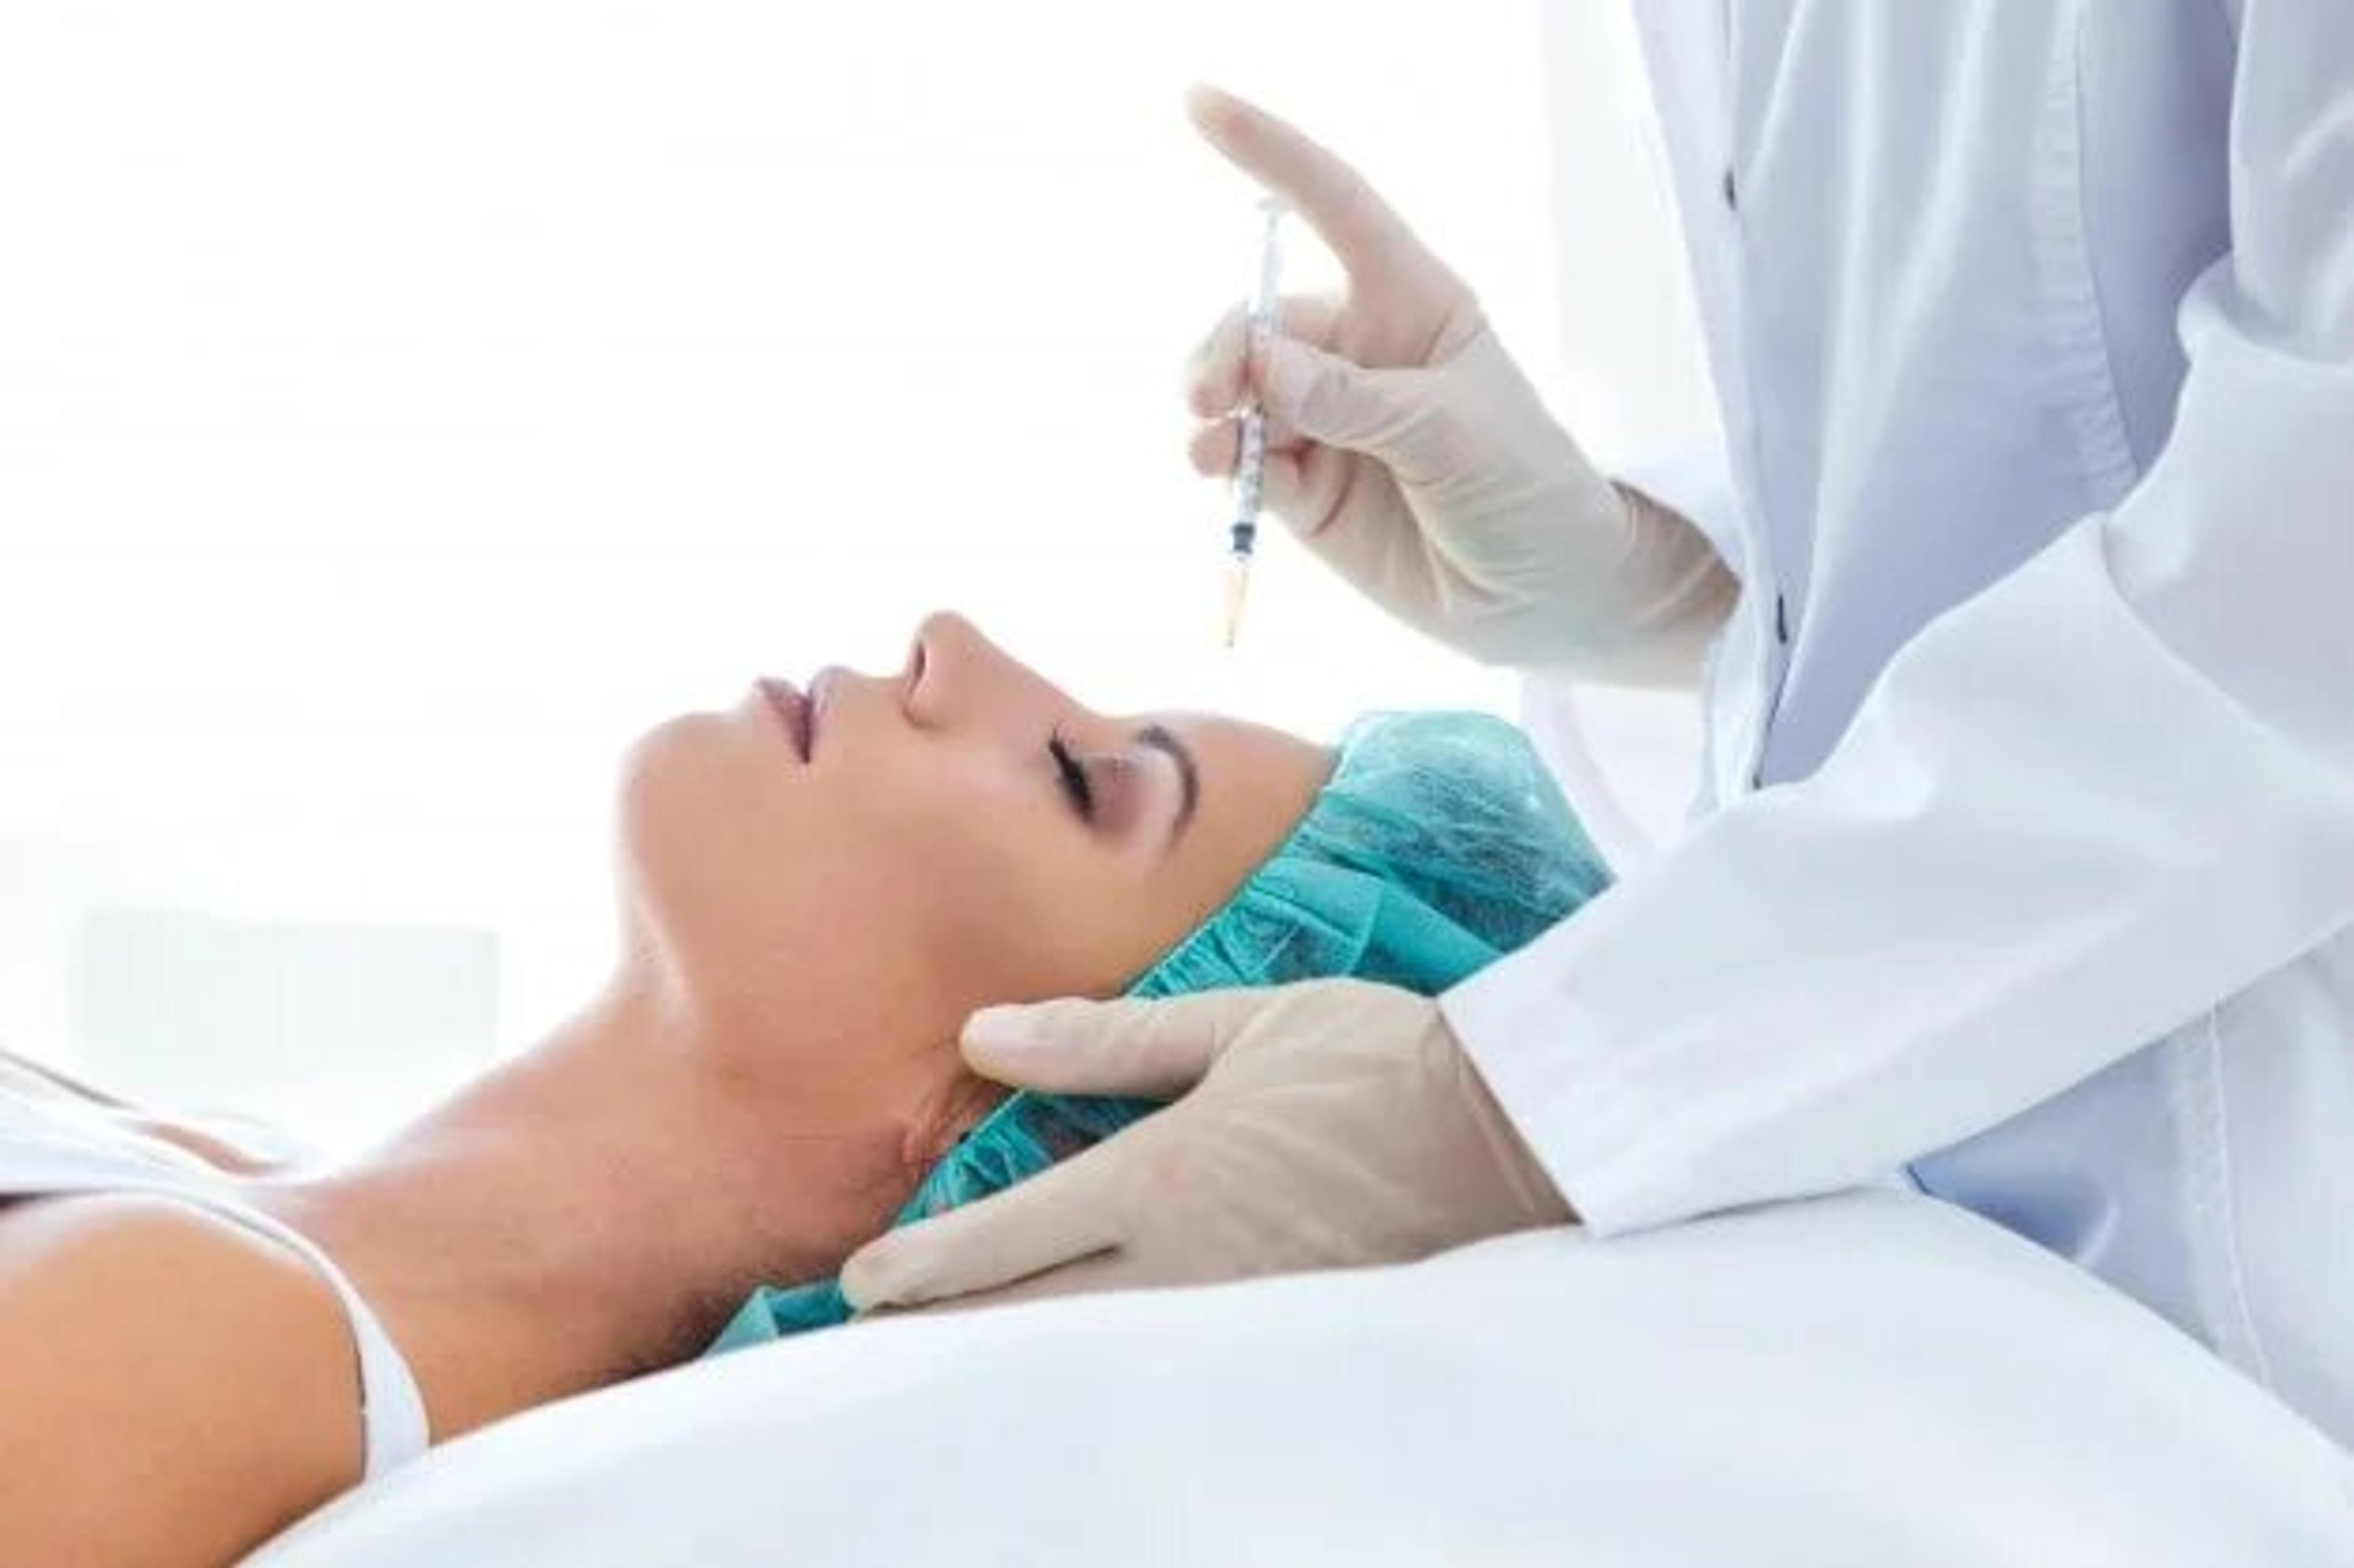 Patient receiving injection in the face